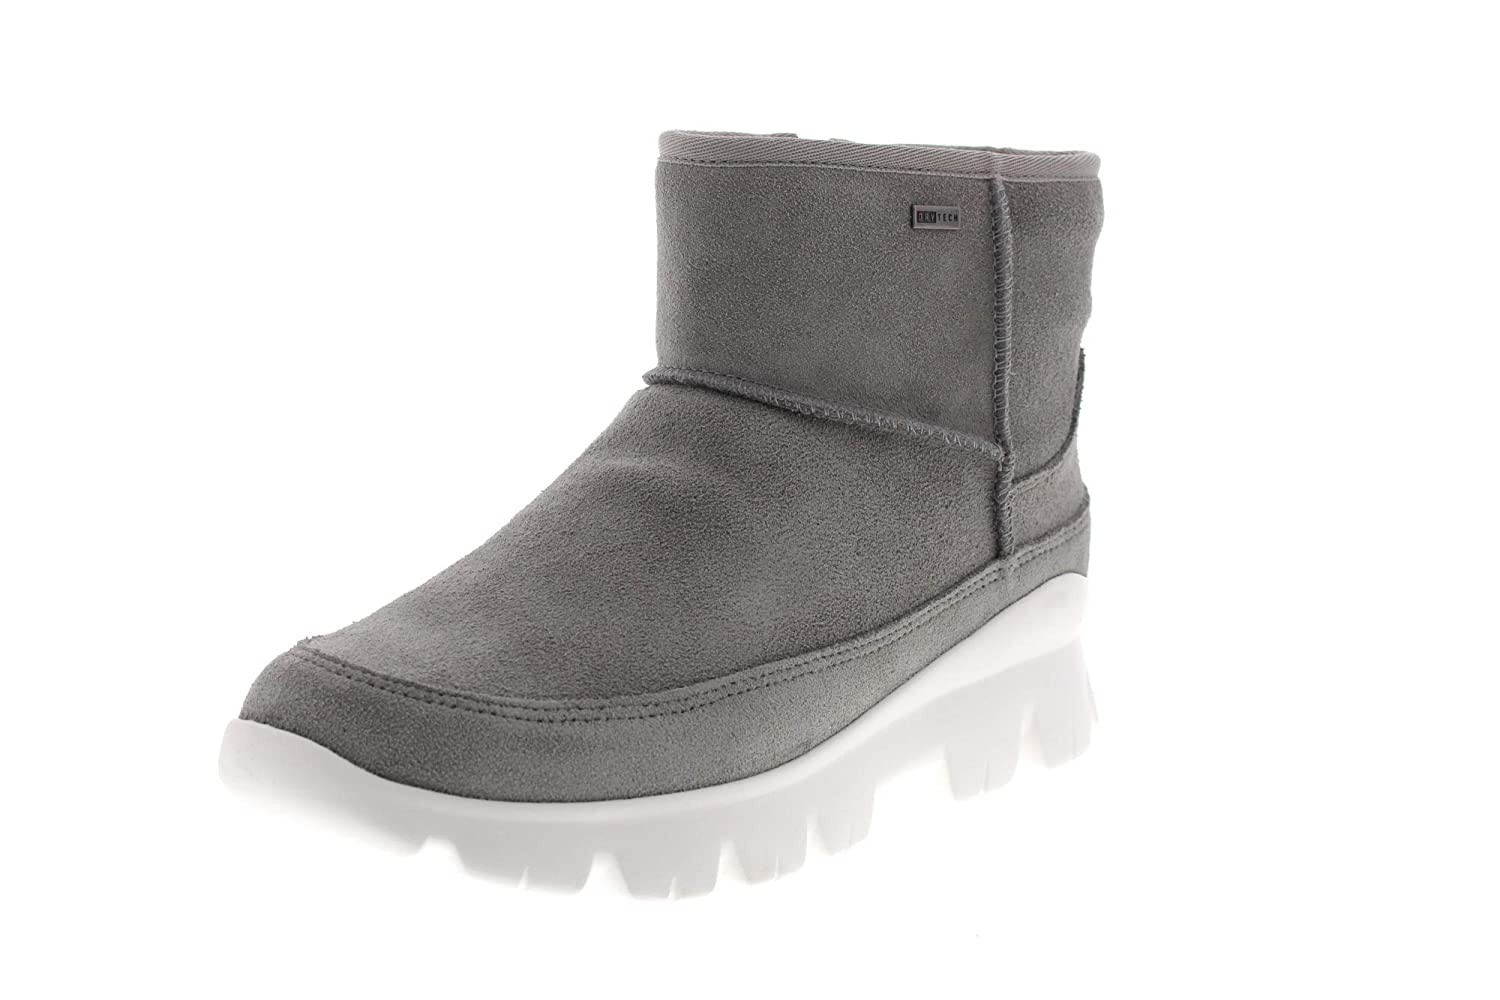 73638039034 UGG Palomar Seal 'Grey' Suede Ankle Boot: Amazon.co.uk: Shoes & Bags